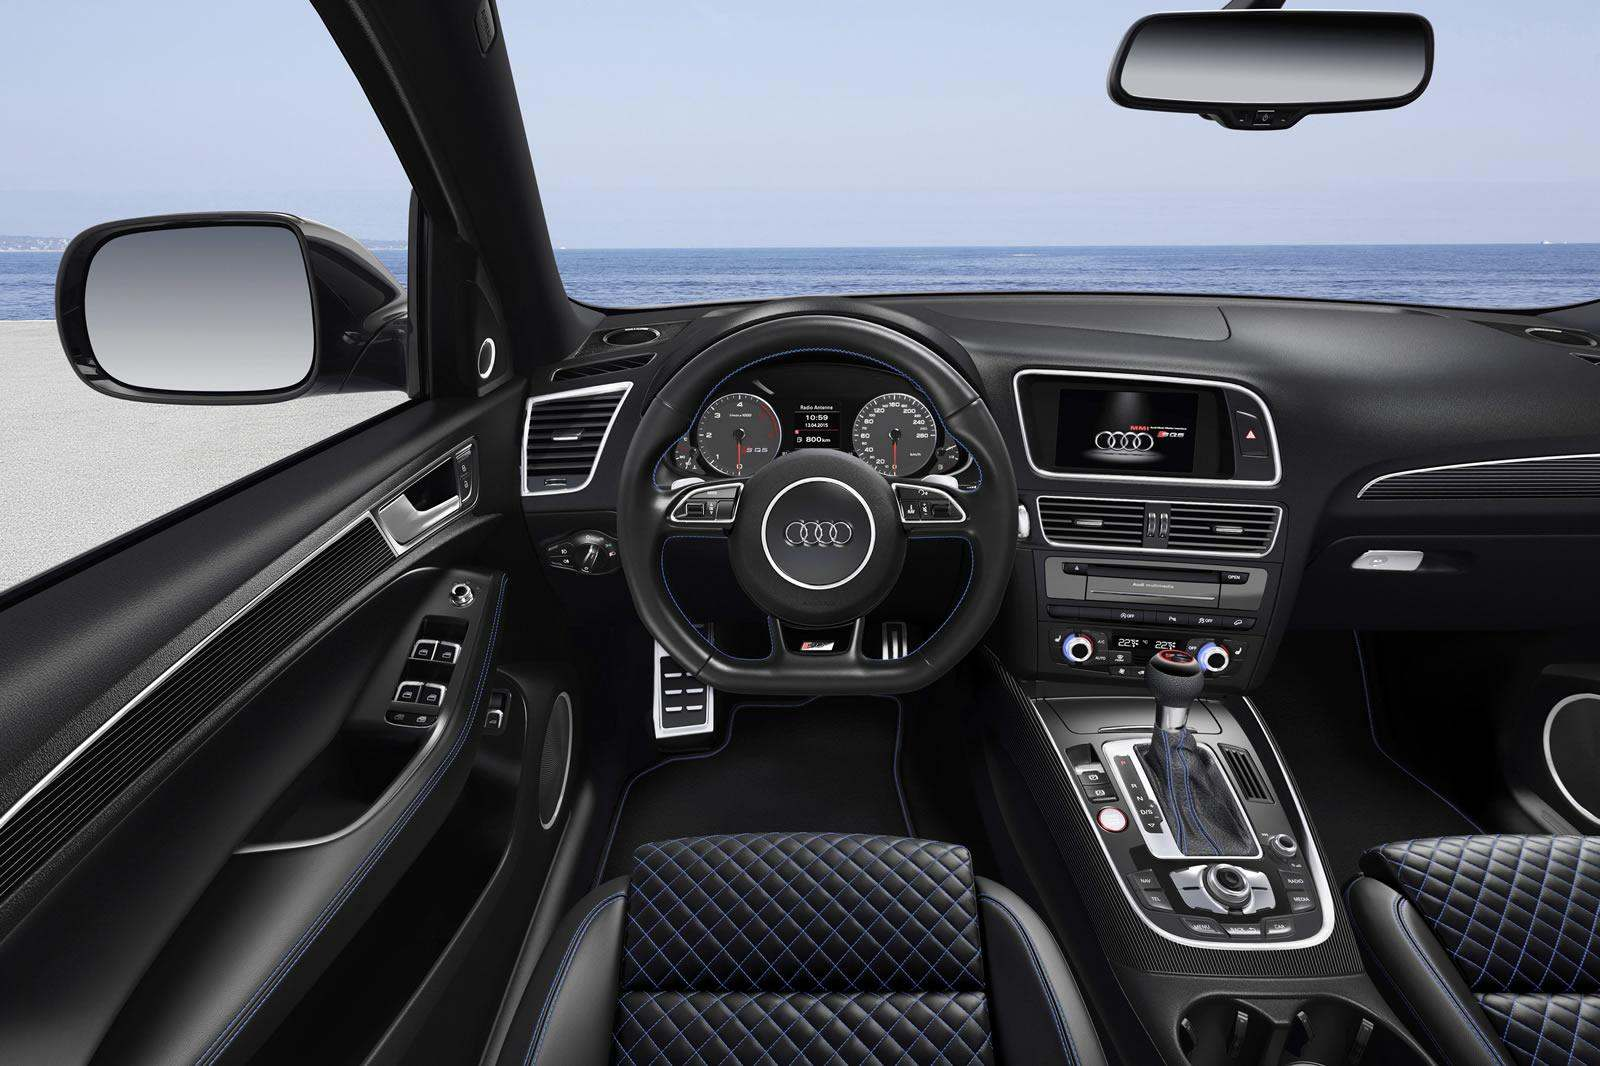 audi lance le sq5 tdi plus un suv de 340 chevaux. Black Bedroom Furniture Sets. Home Design Ideas